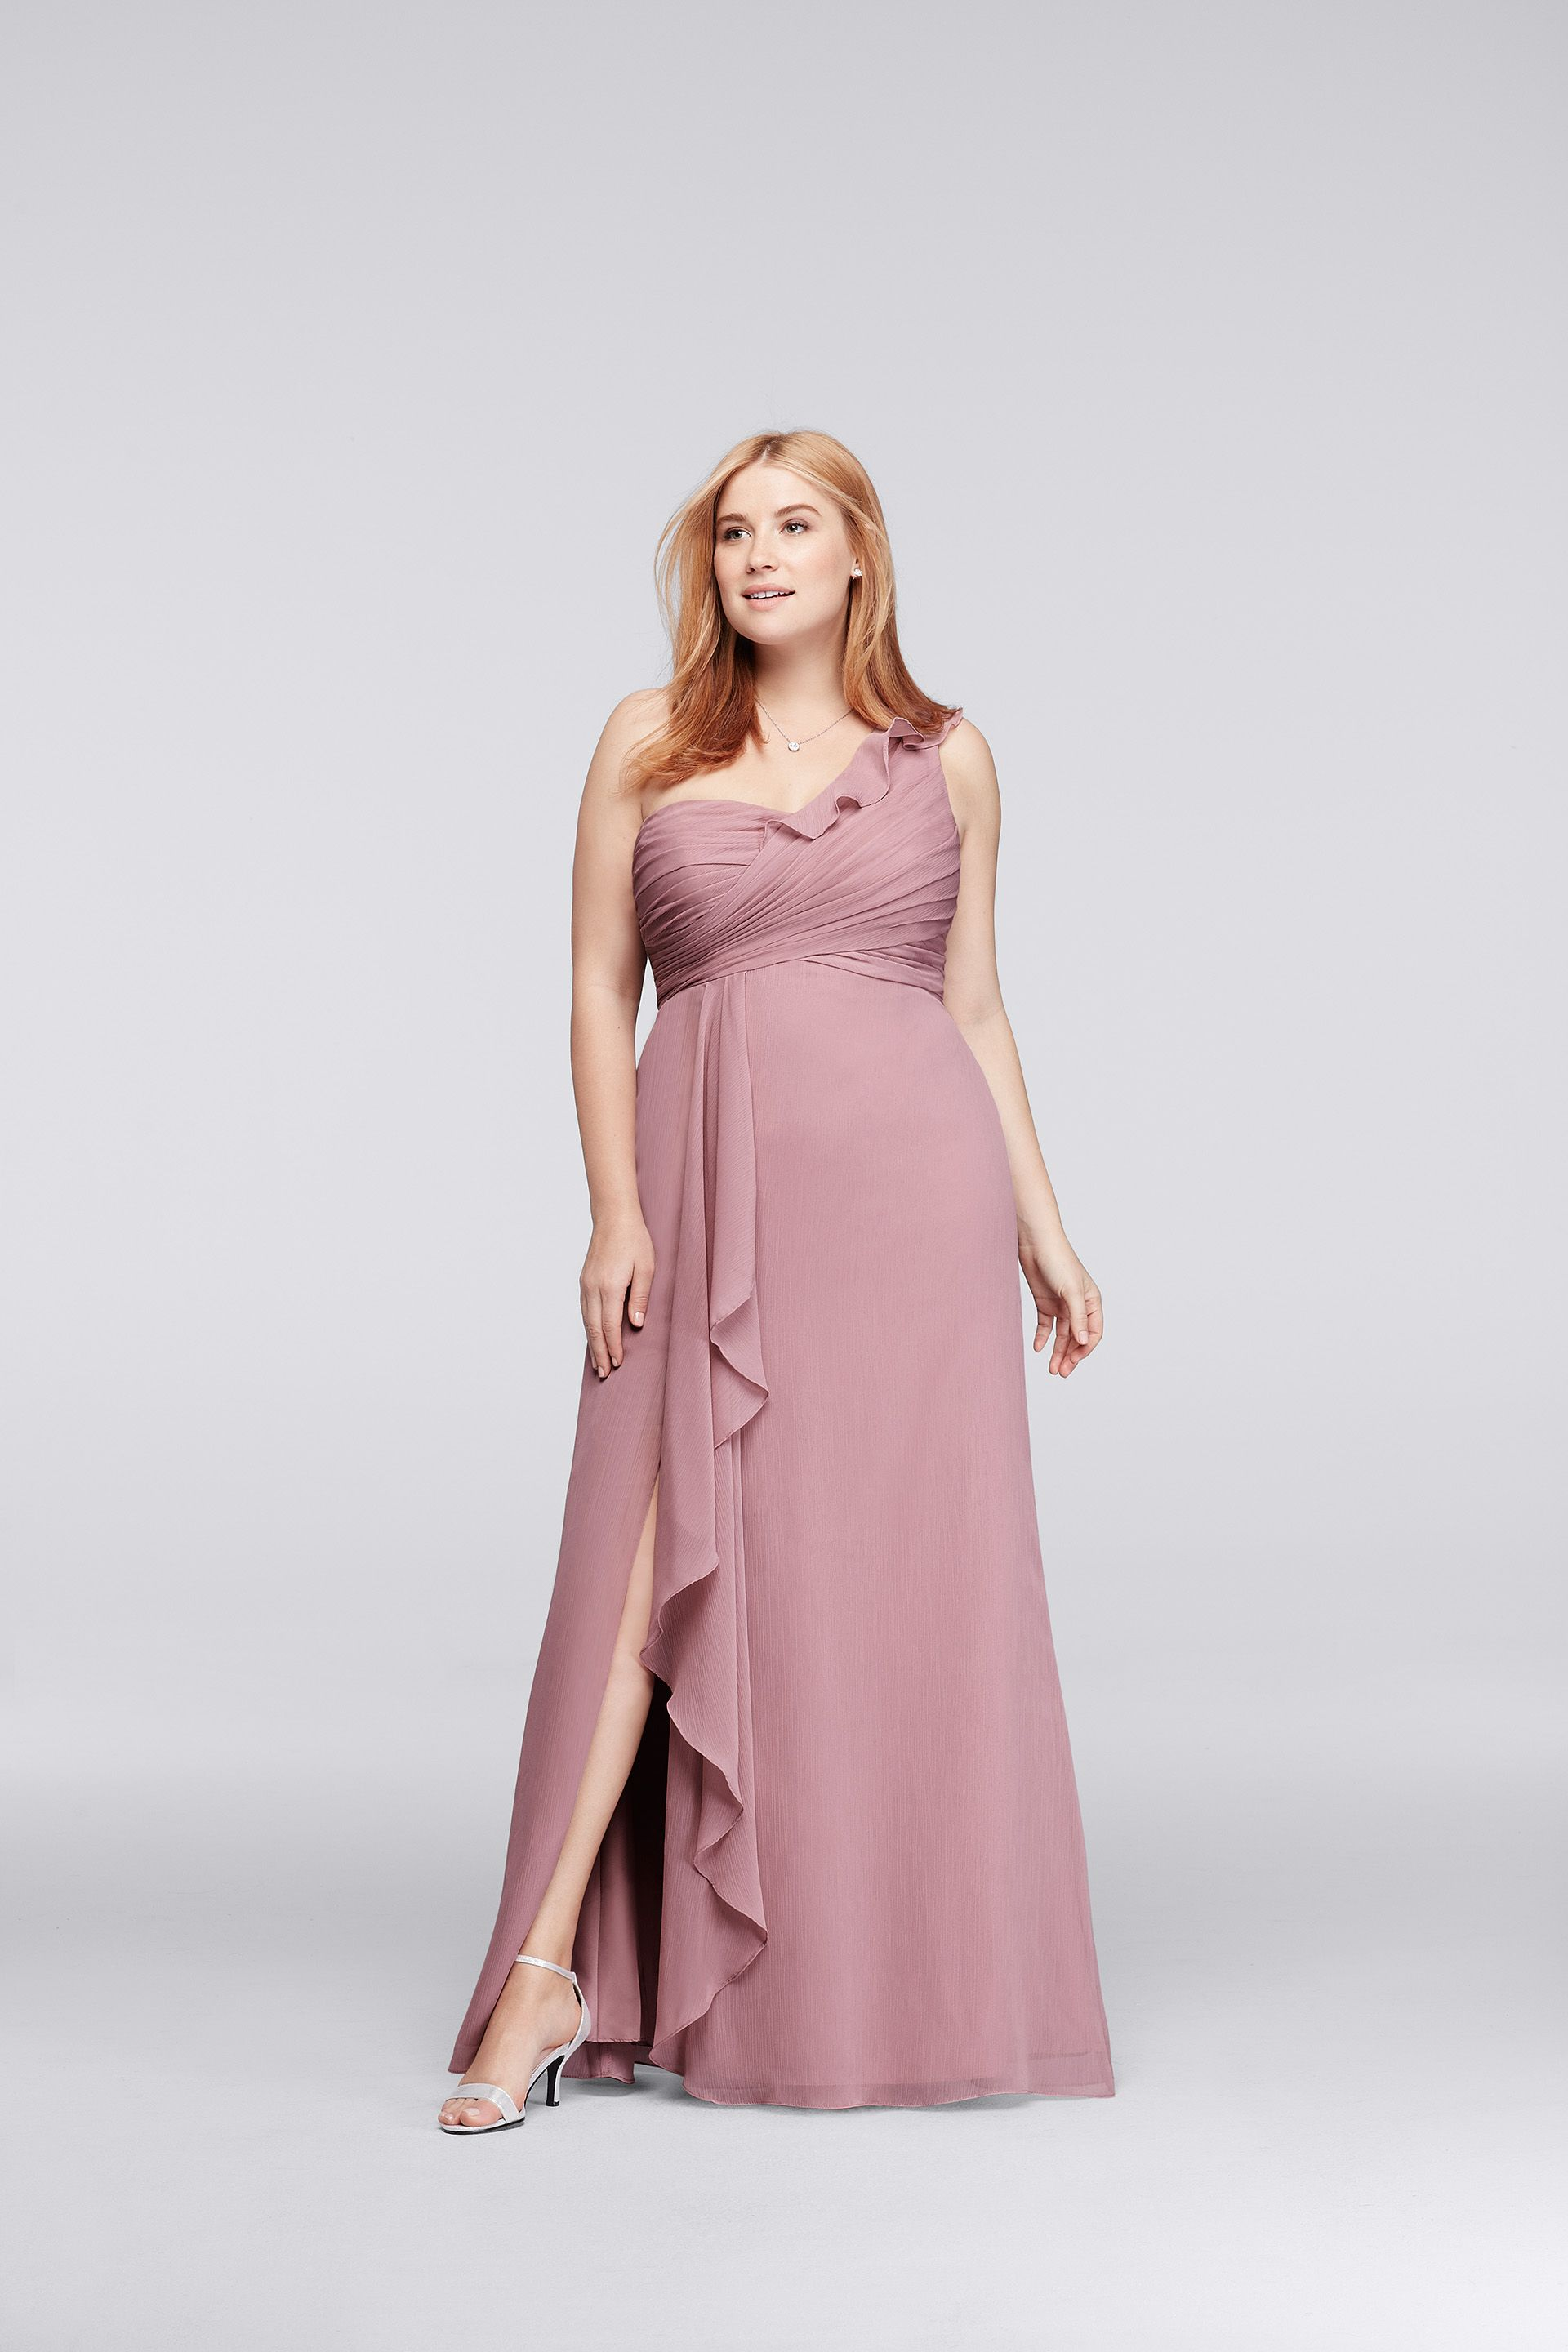 A rose quartz bridesmaid dress is exactly the look we are going for ...